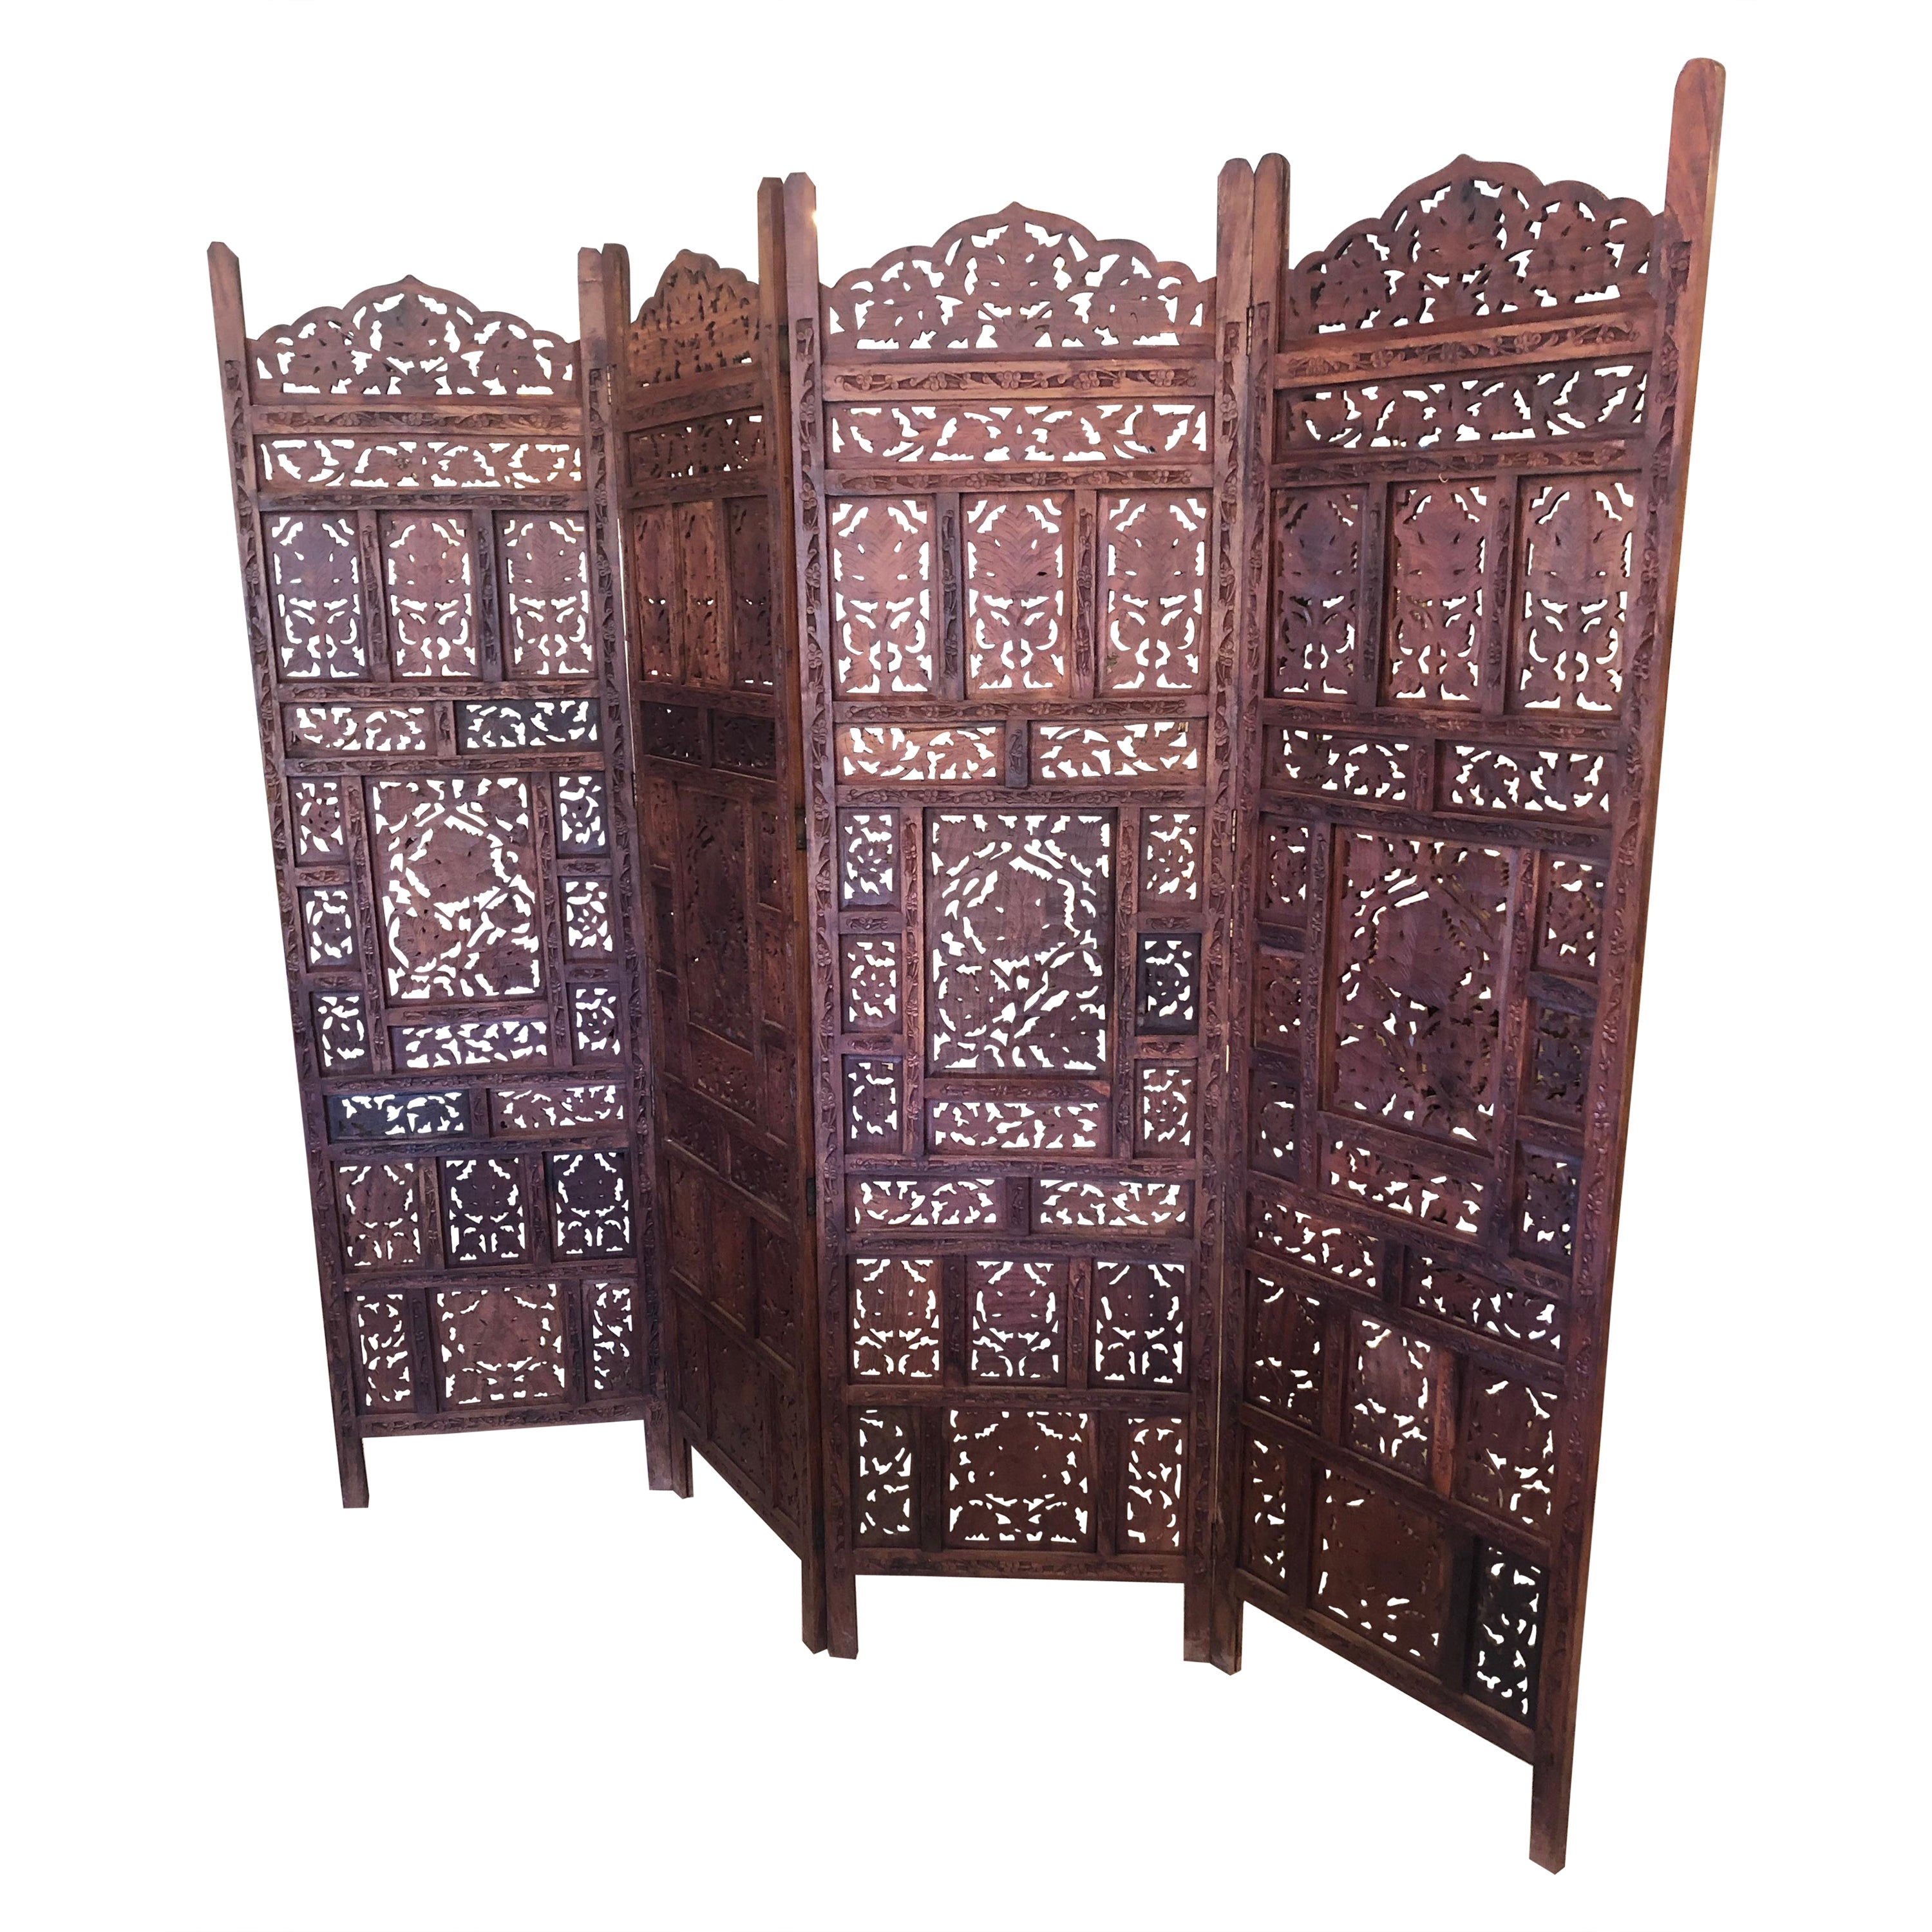 Very Large 4 Panel Anglo Indian Carved Teak Screen Room Divider